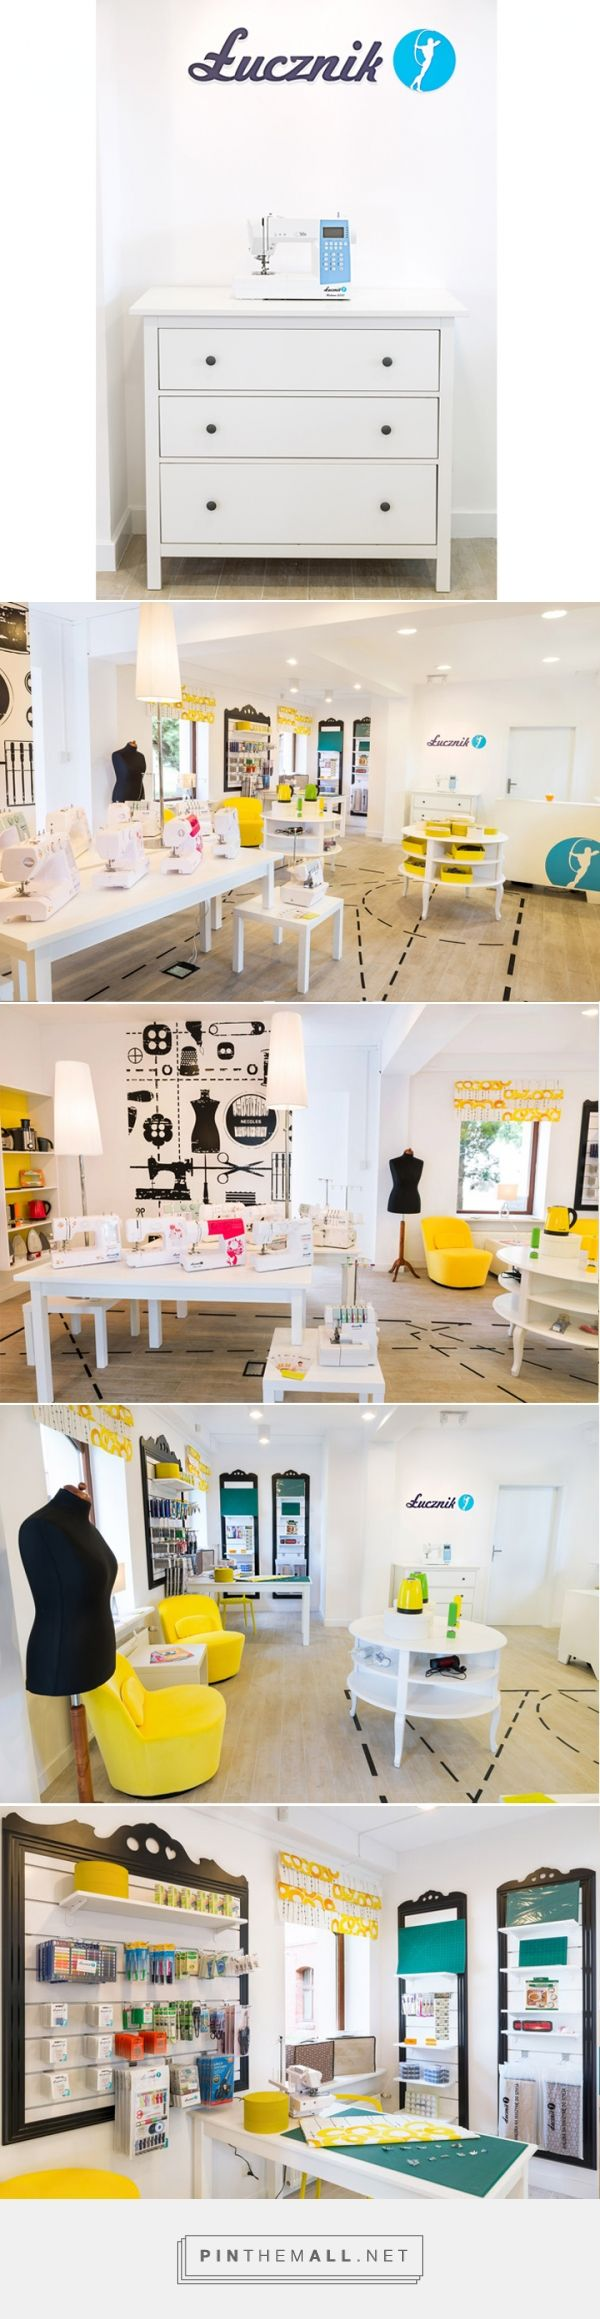 Łucznik showroom by 2kul, Wrocław – Poland » Retail Design Blog... - a grouped images picture - Pin Them All